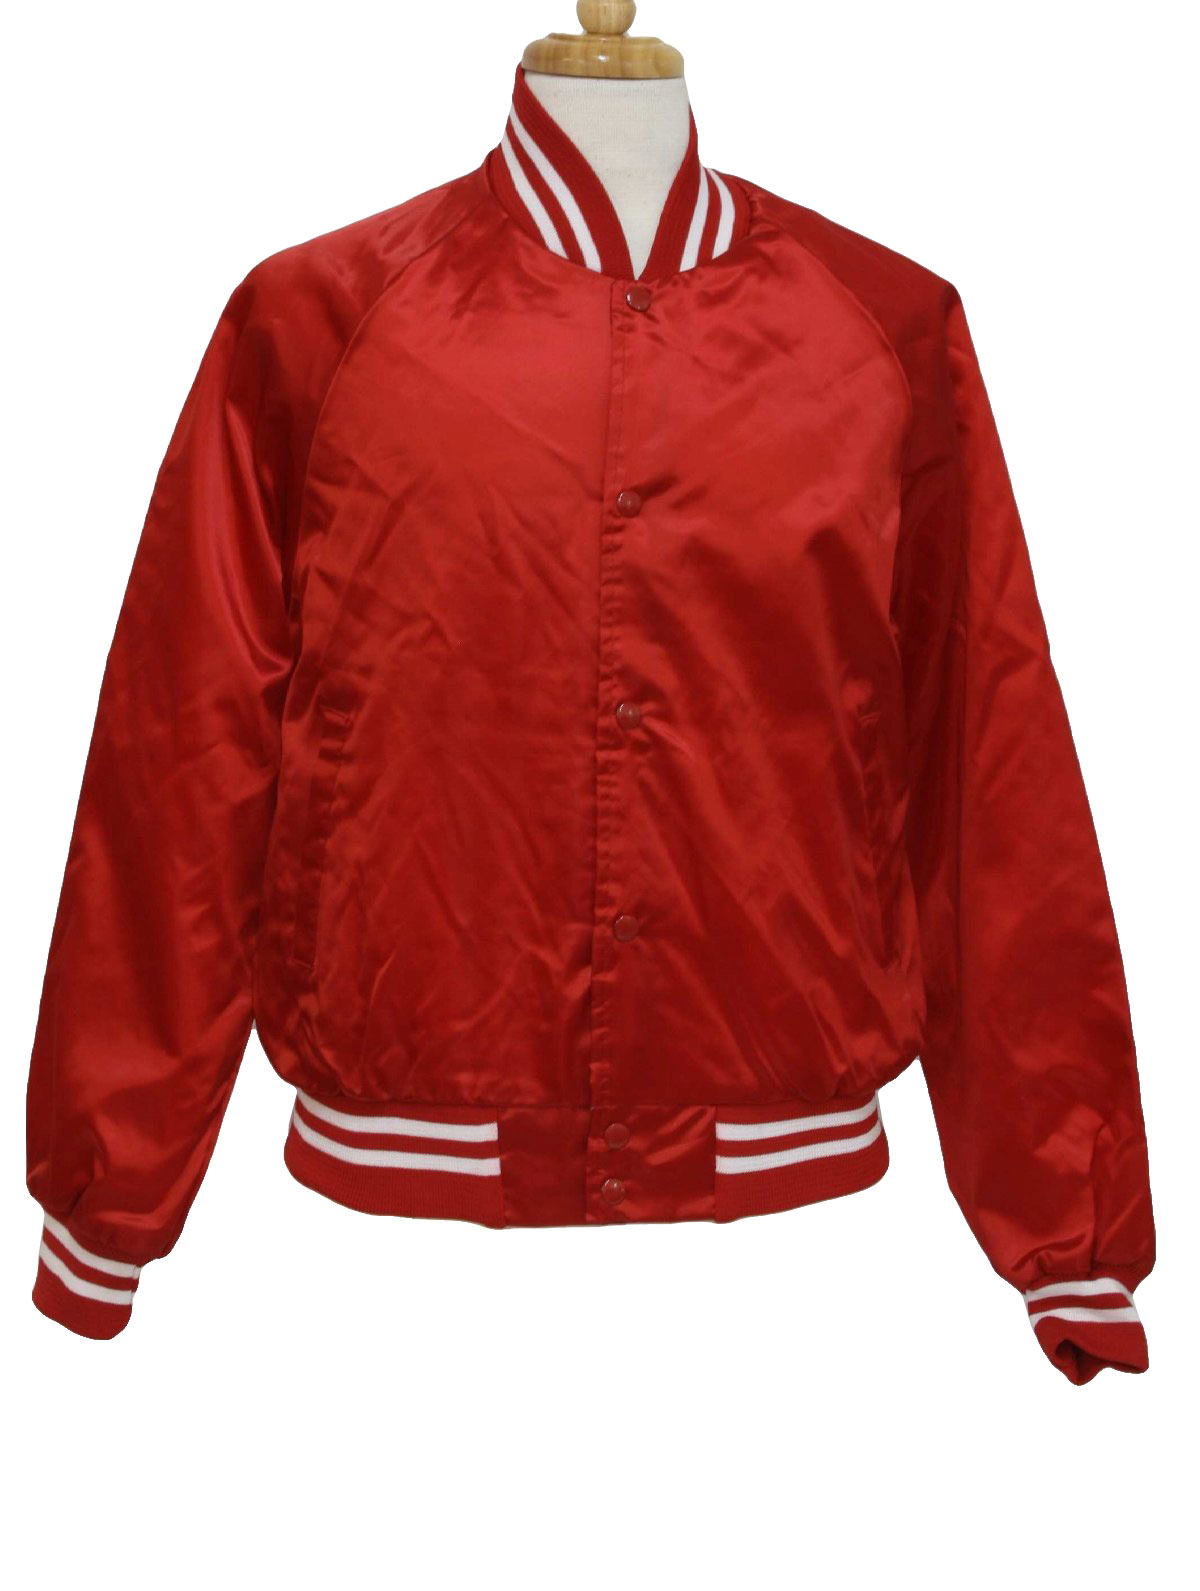 1980's Retro Jacket: 80s -Auburn- Mens red and white nylon satin ...